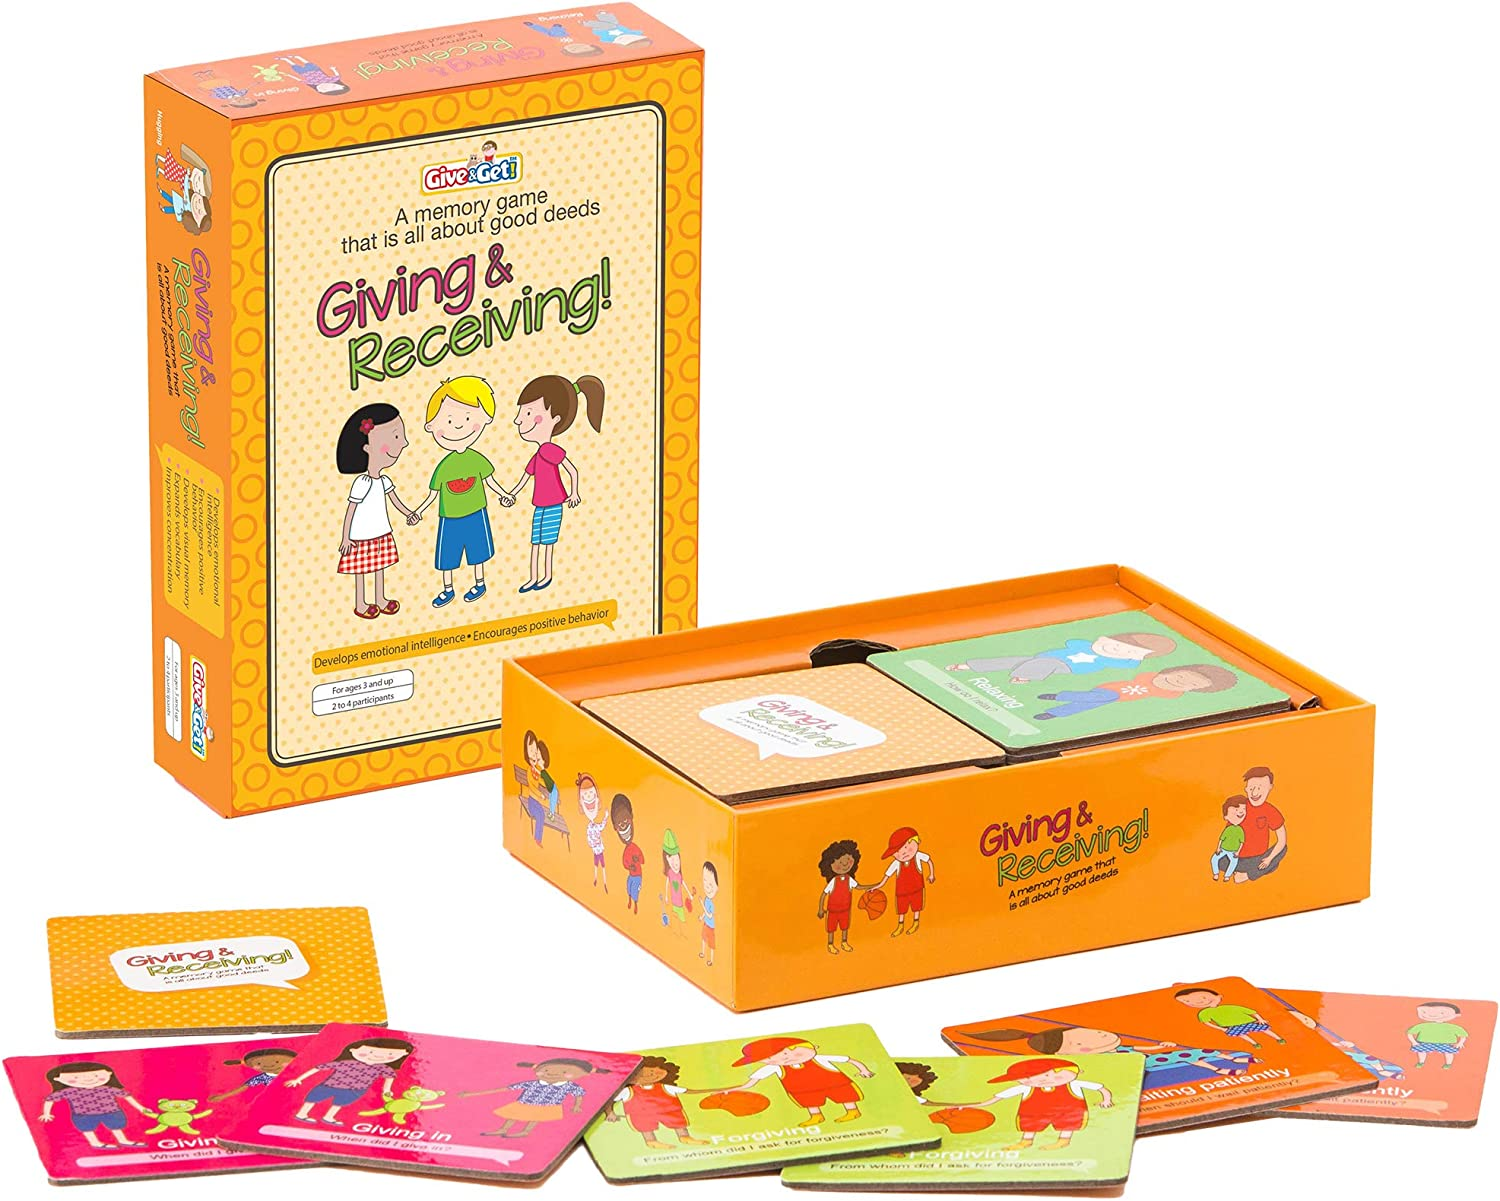 Giving & Receiving Memory Matching Game focused on Good Deeds for kids 3 years old and up. Perfect preschool memory card game to develop concentration and encourage positive behavior